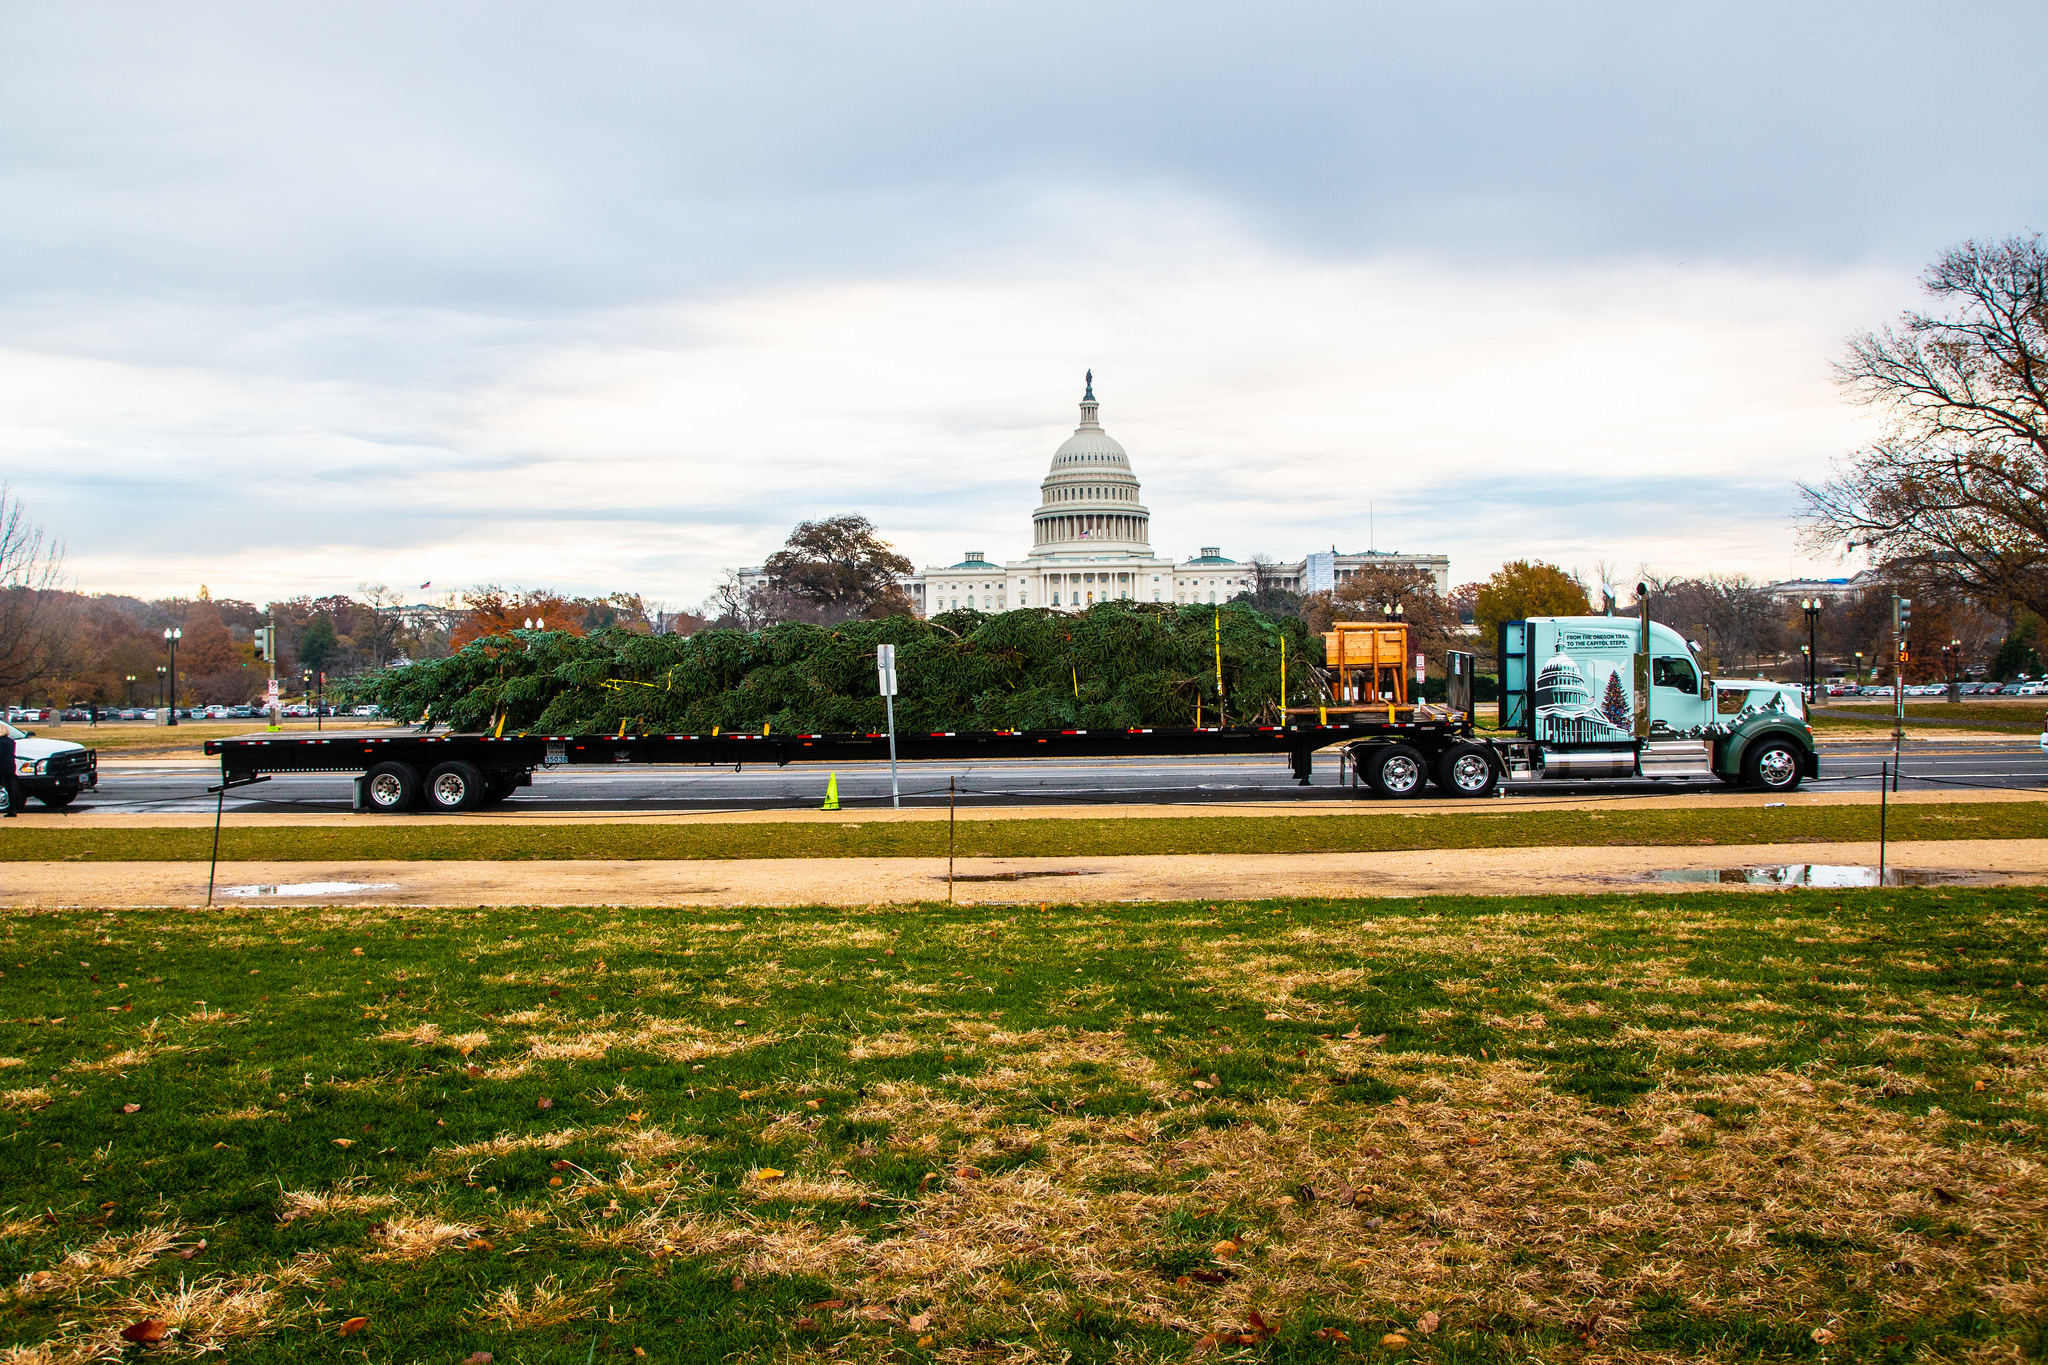 Photo: Flat-bed truck delivering the 2018 Capitol Christmas Tree. US Capitol seen in the background. Daylight